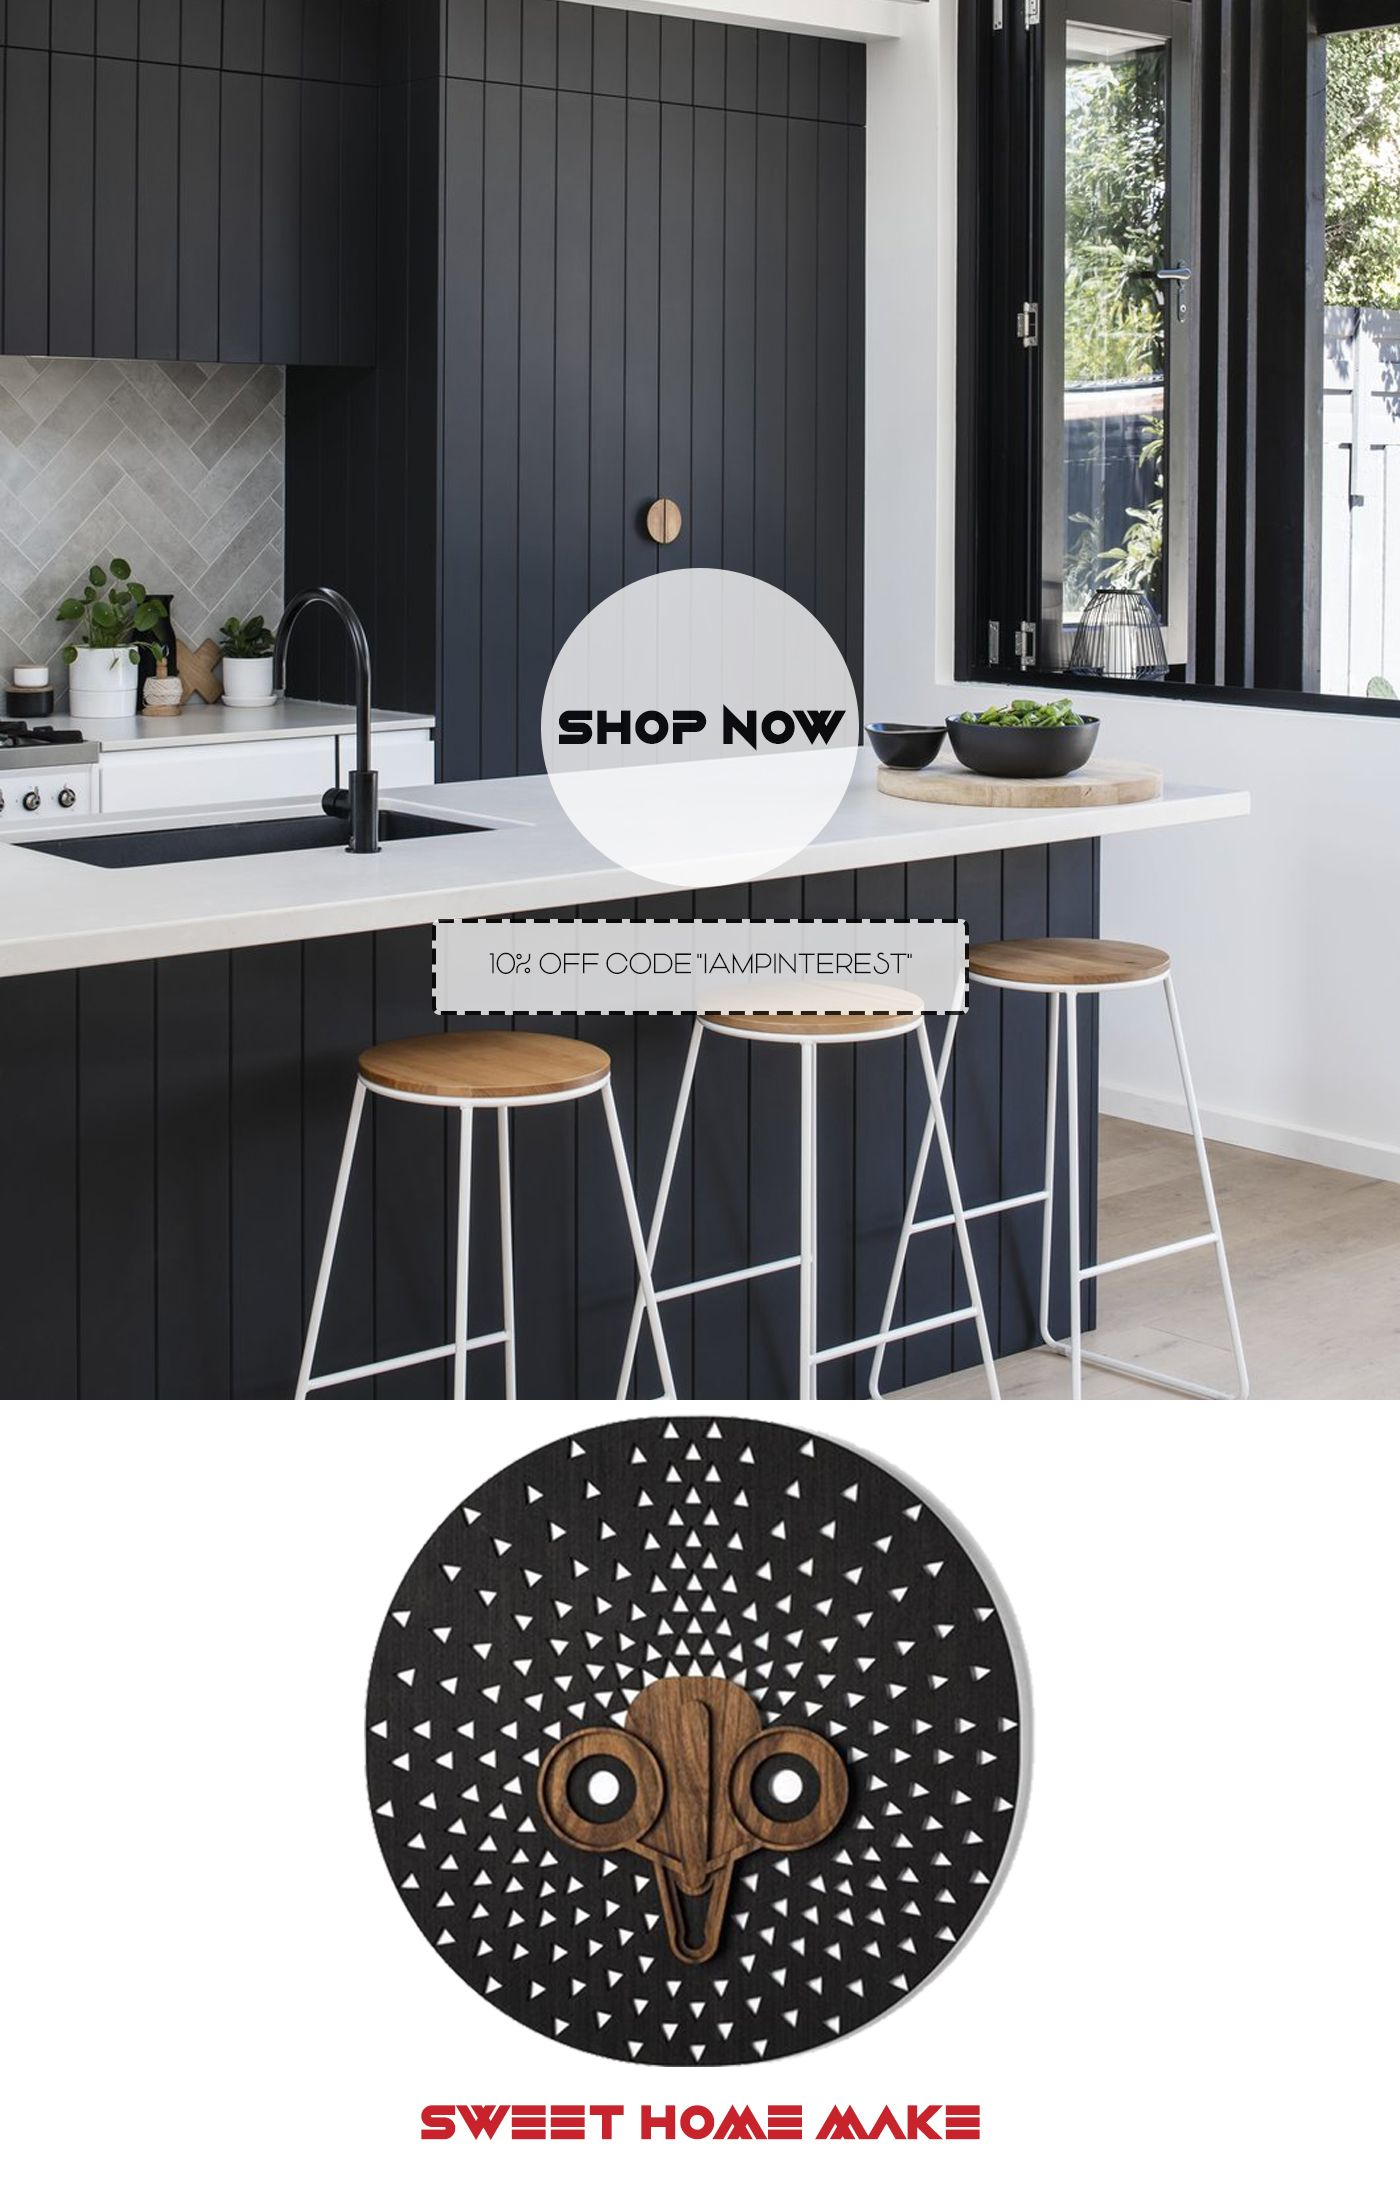 Black And White Wall Art For Black Kitchen Interior Design White Wall Art Black And White Wall Art Interior Design Kitchen